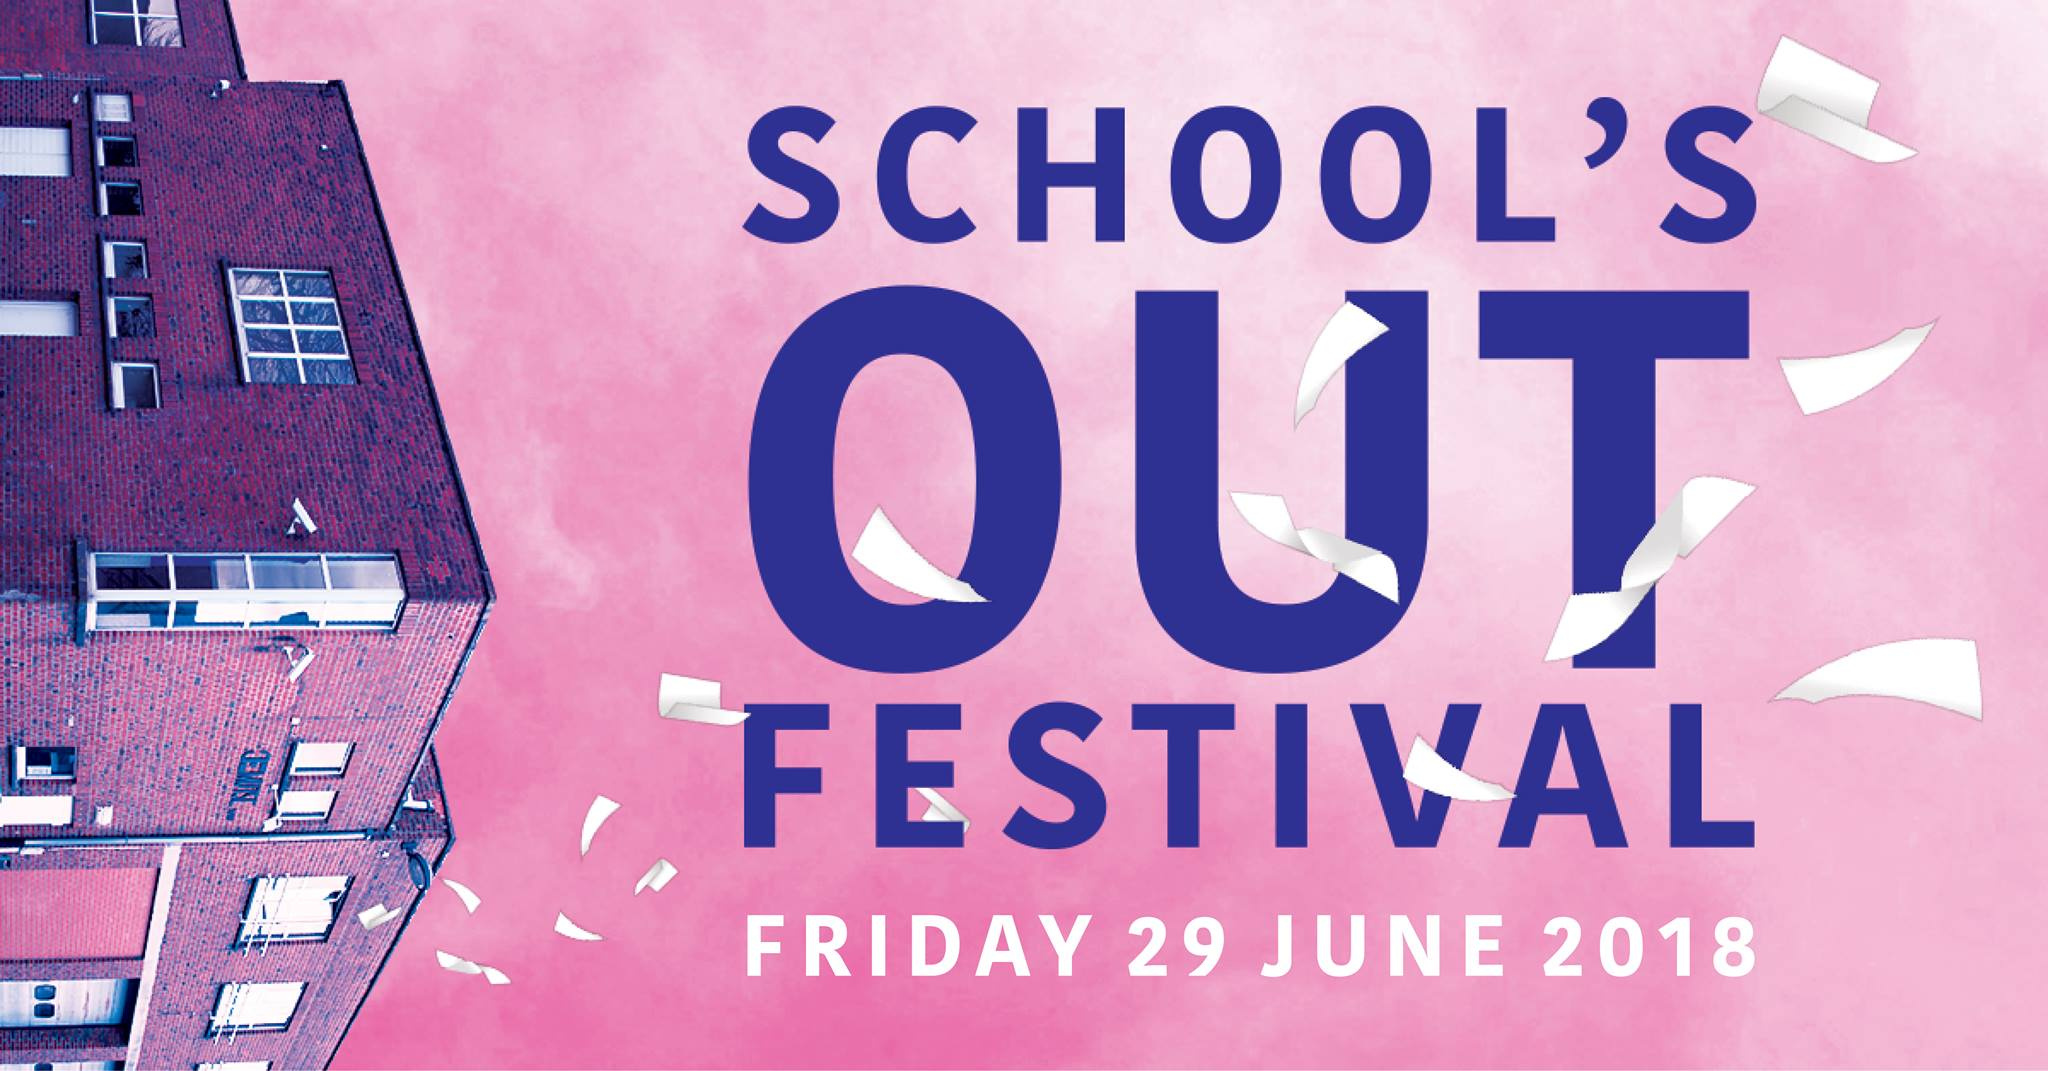 School out festival 2018